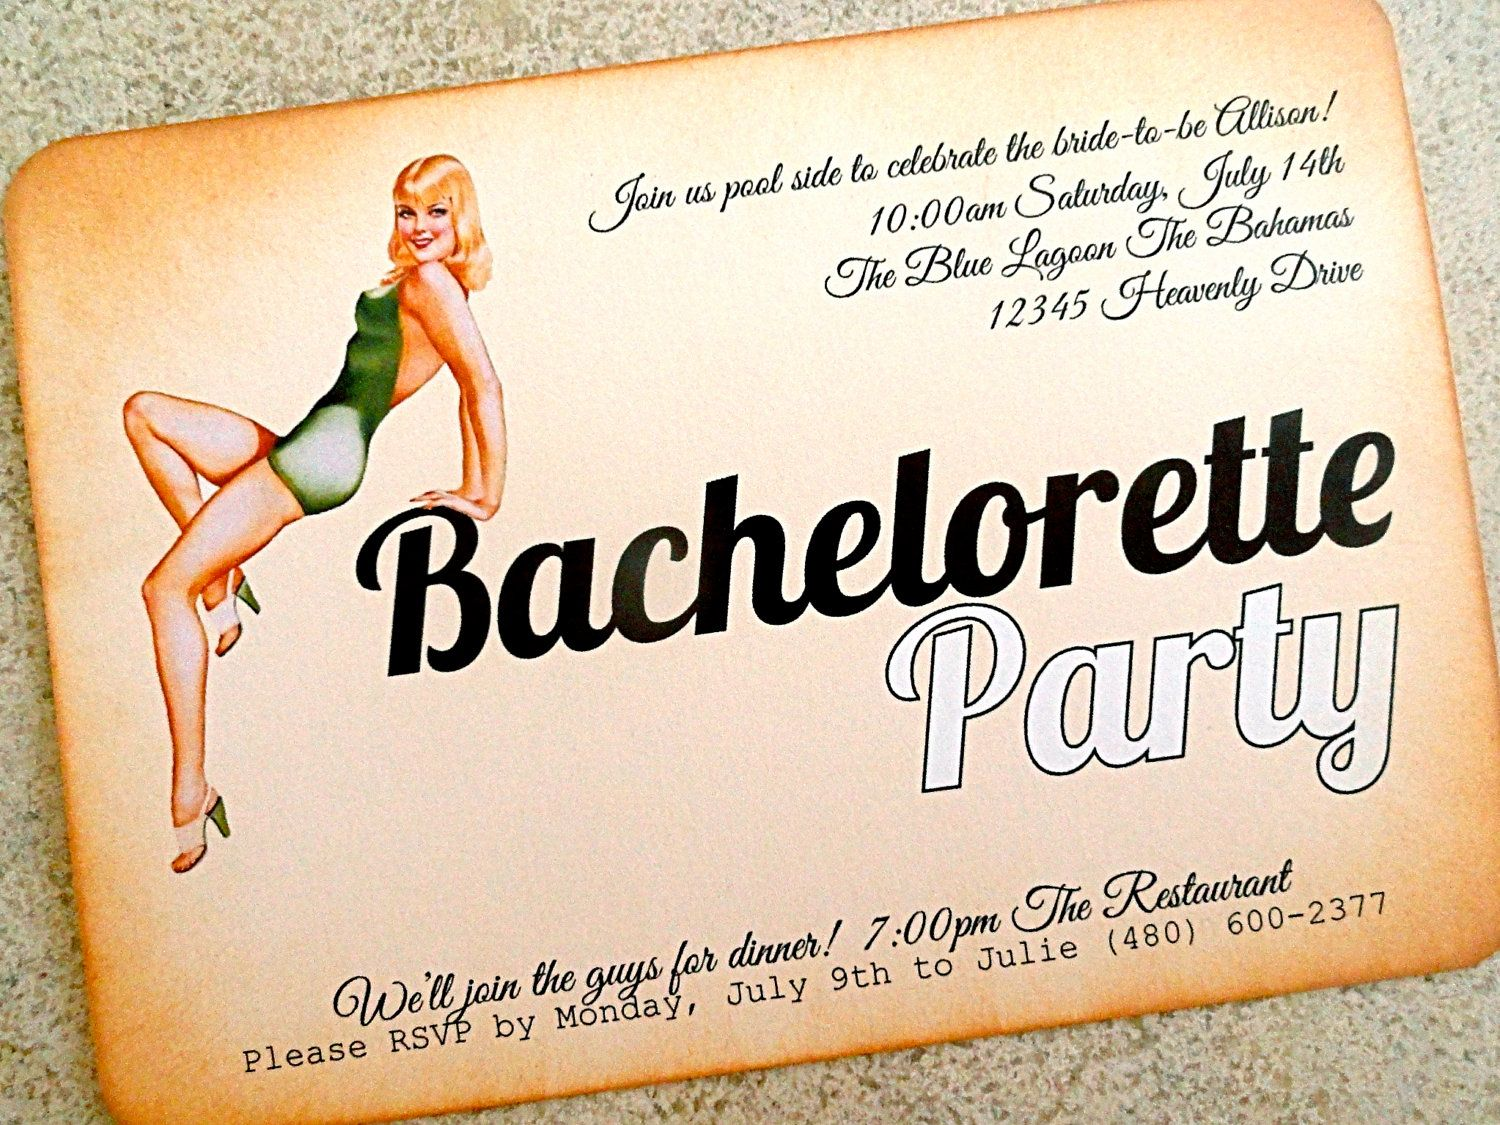 Bachelorette Party Invitation - Vintage Pin Up Girl Poolside ...